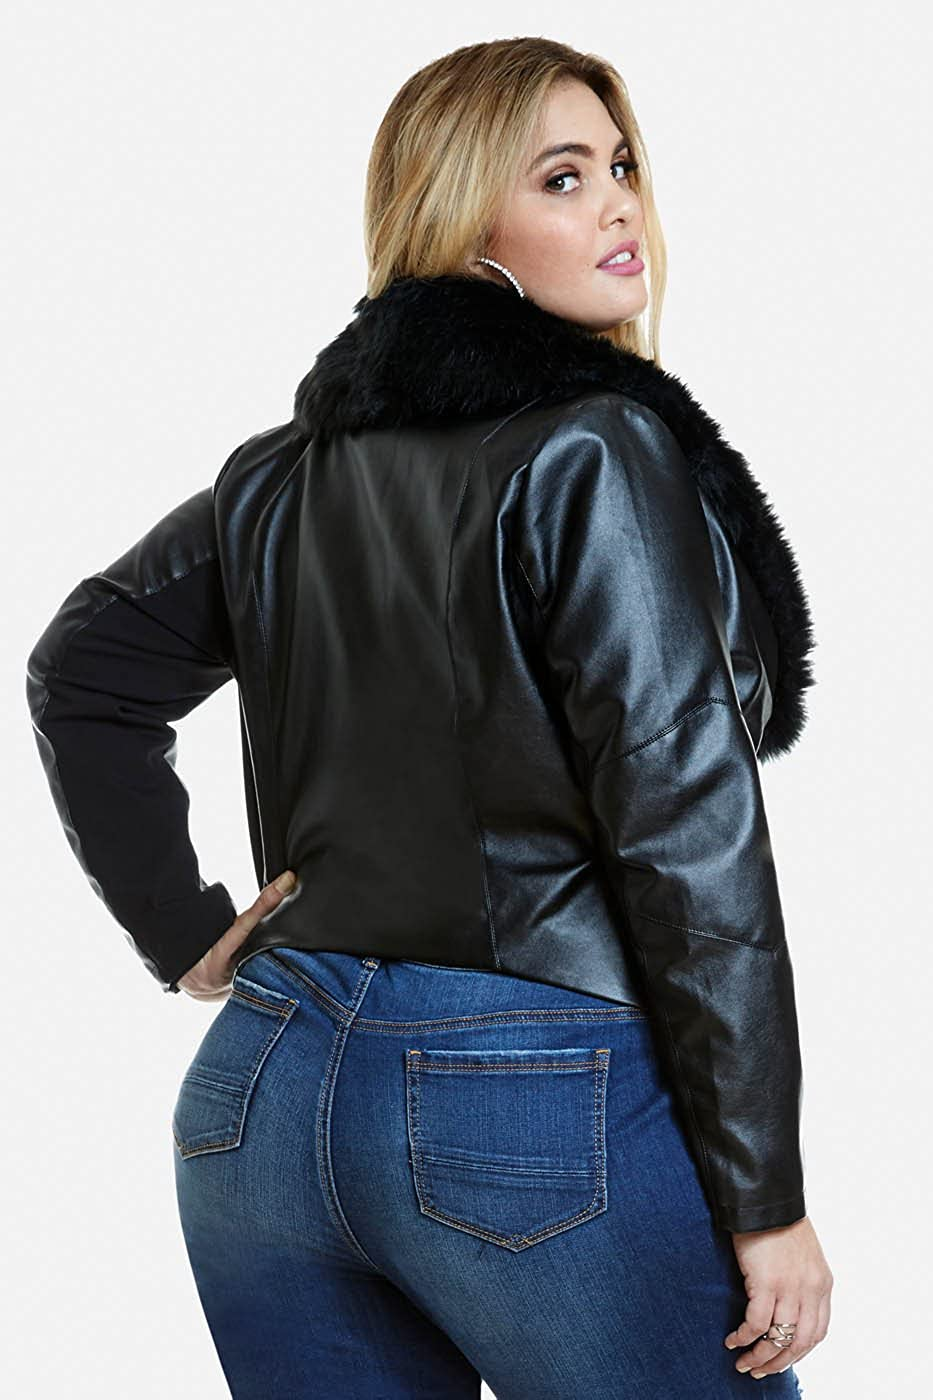 Amazon.com: Womens Plus Size Faux Leather Motorcycle Biker Evana Jacket with Faux Fur Collar: Fashion To Figure: Clothing